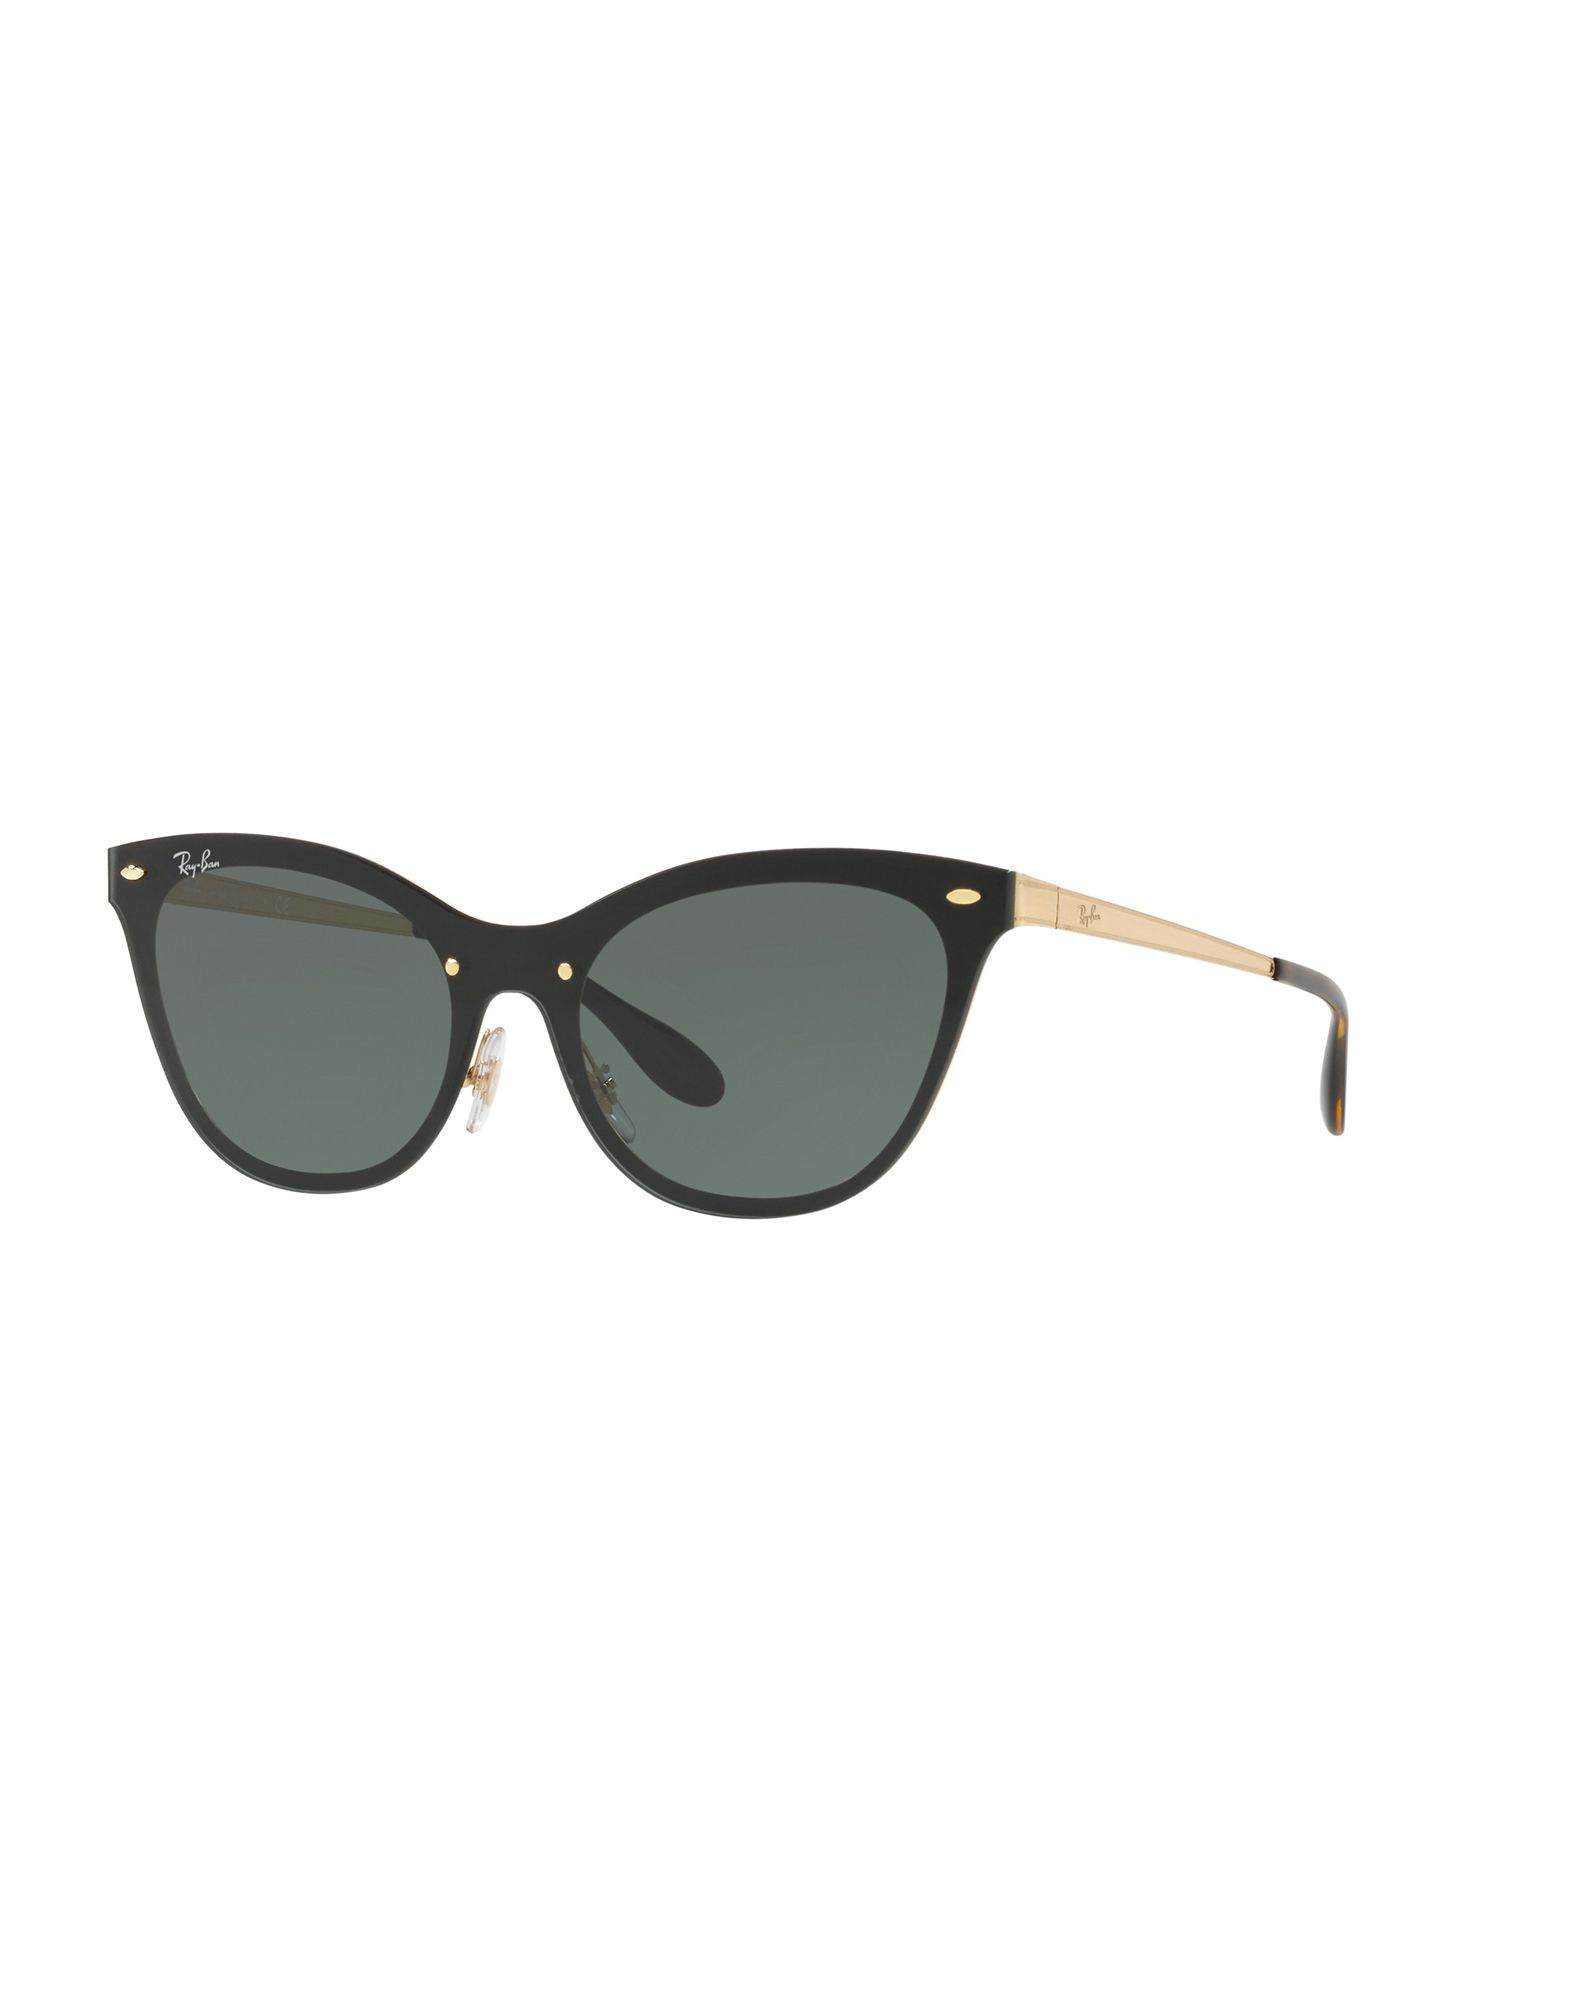 Occhiali Da Sole Ray-Ban Rb3580n Blaze Cat Eye - Donna - Acquista online su